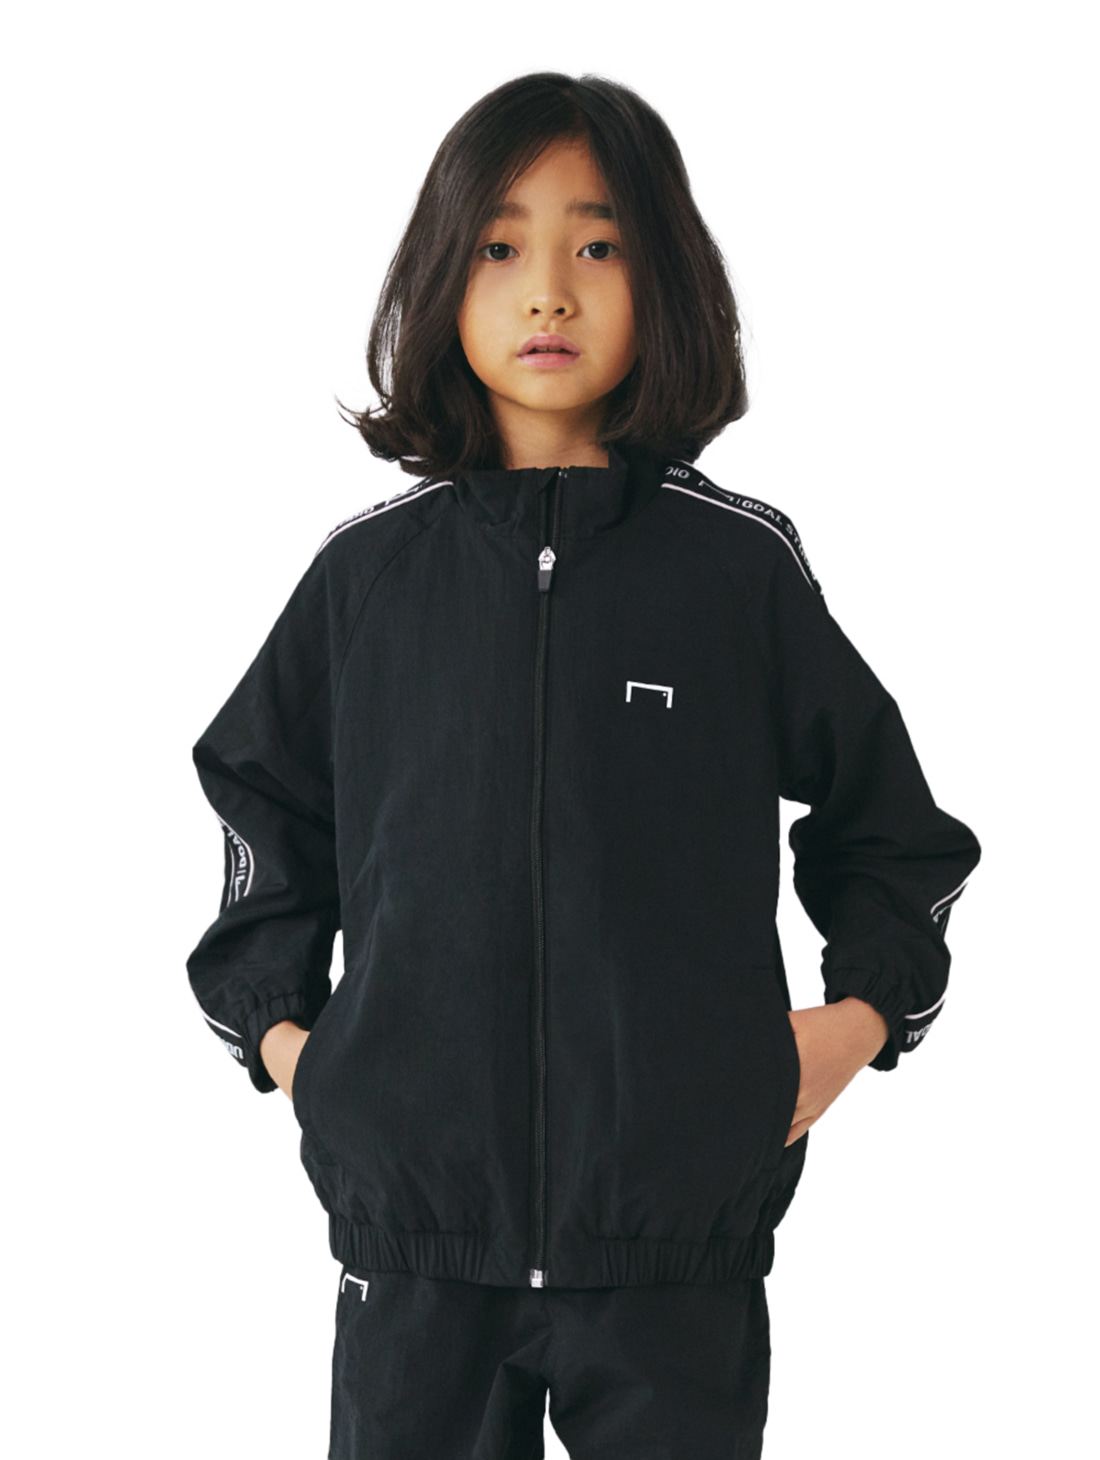 GOALSTUDIO (KIDS) SMALL LOGO TRACK JACKET - BLACK